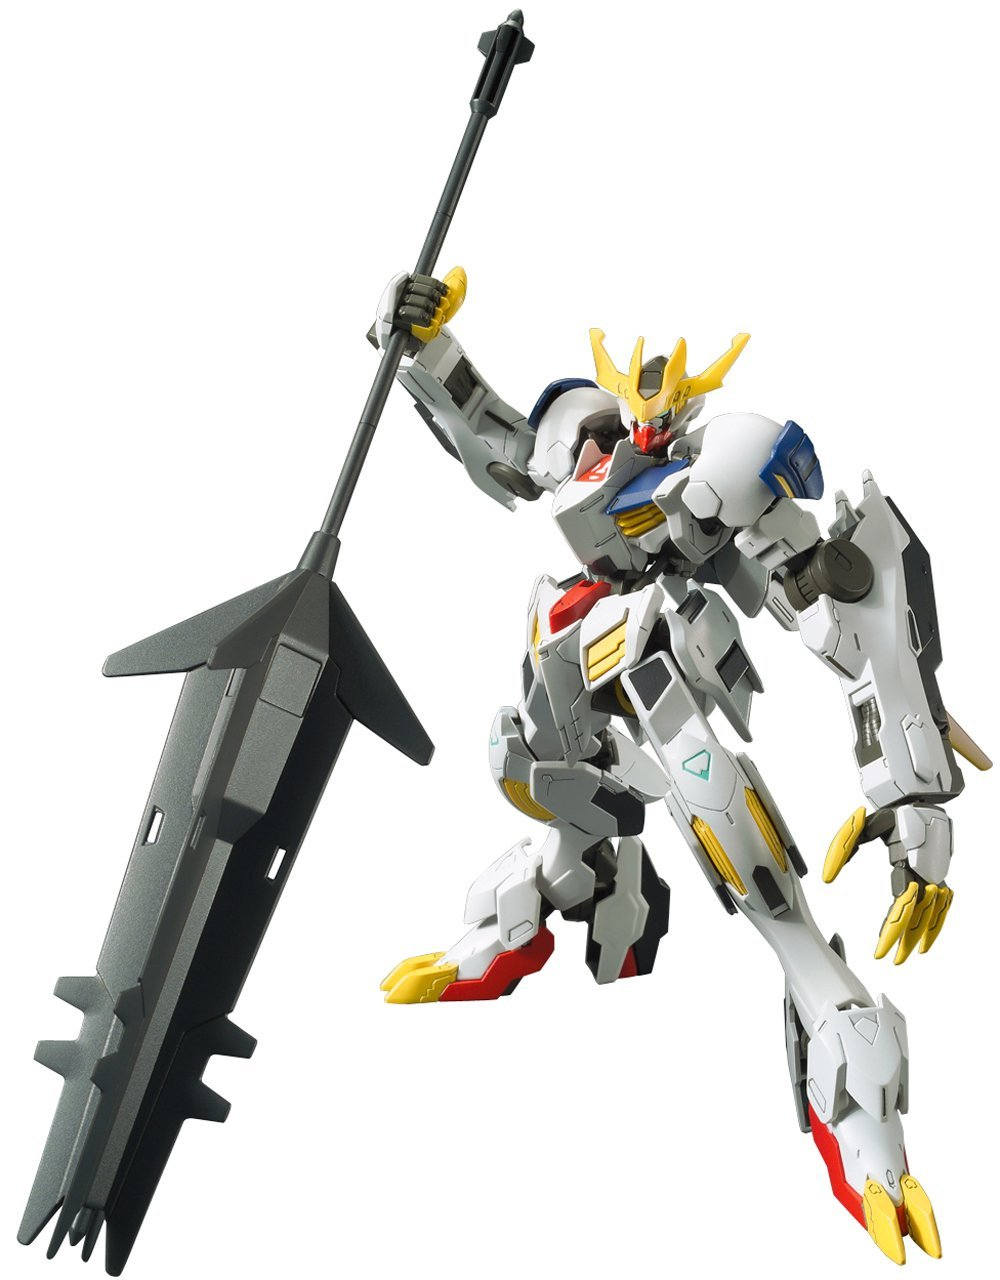 """HG #33 Barbatos Lupus Rex """"Gundam IBO"""" Model Kit (1 144 Scale), Its massive arms that reflect its... by"""